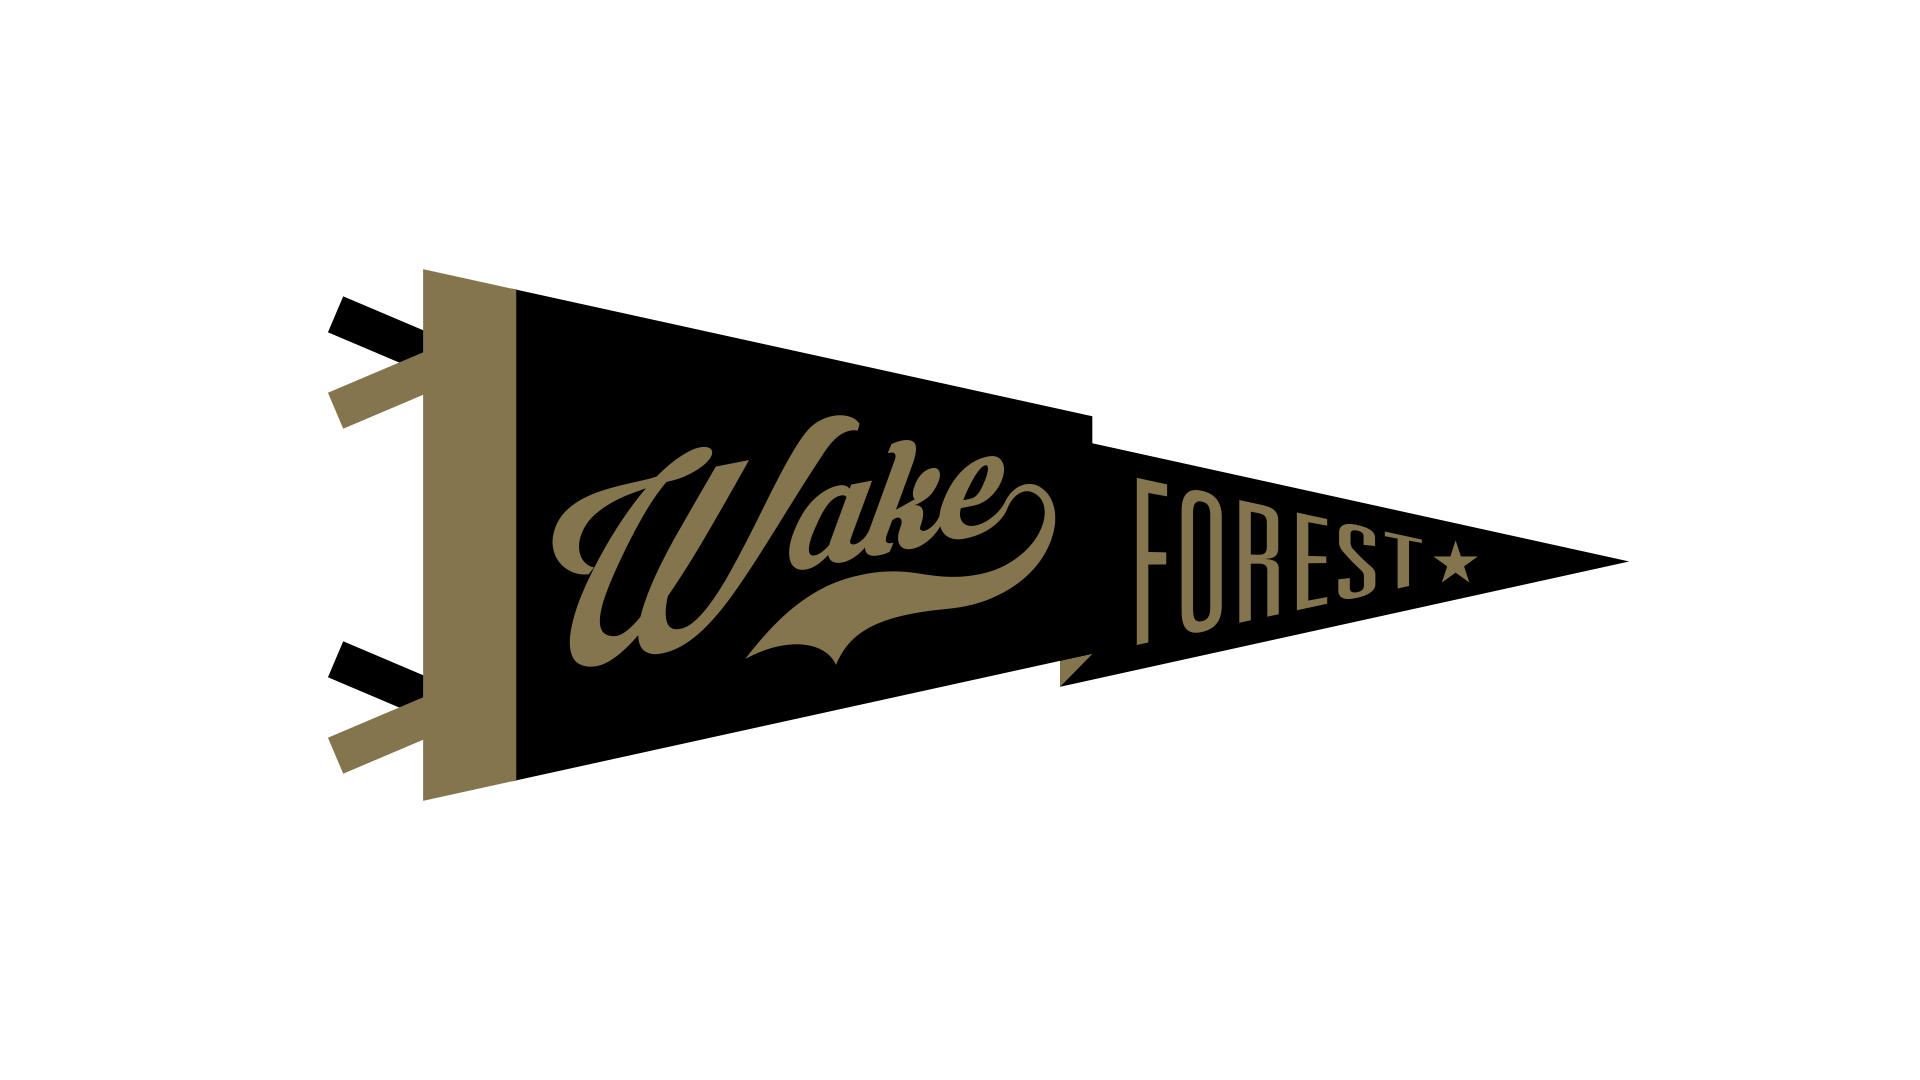 Wake Forest pennant wallpaper